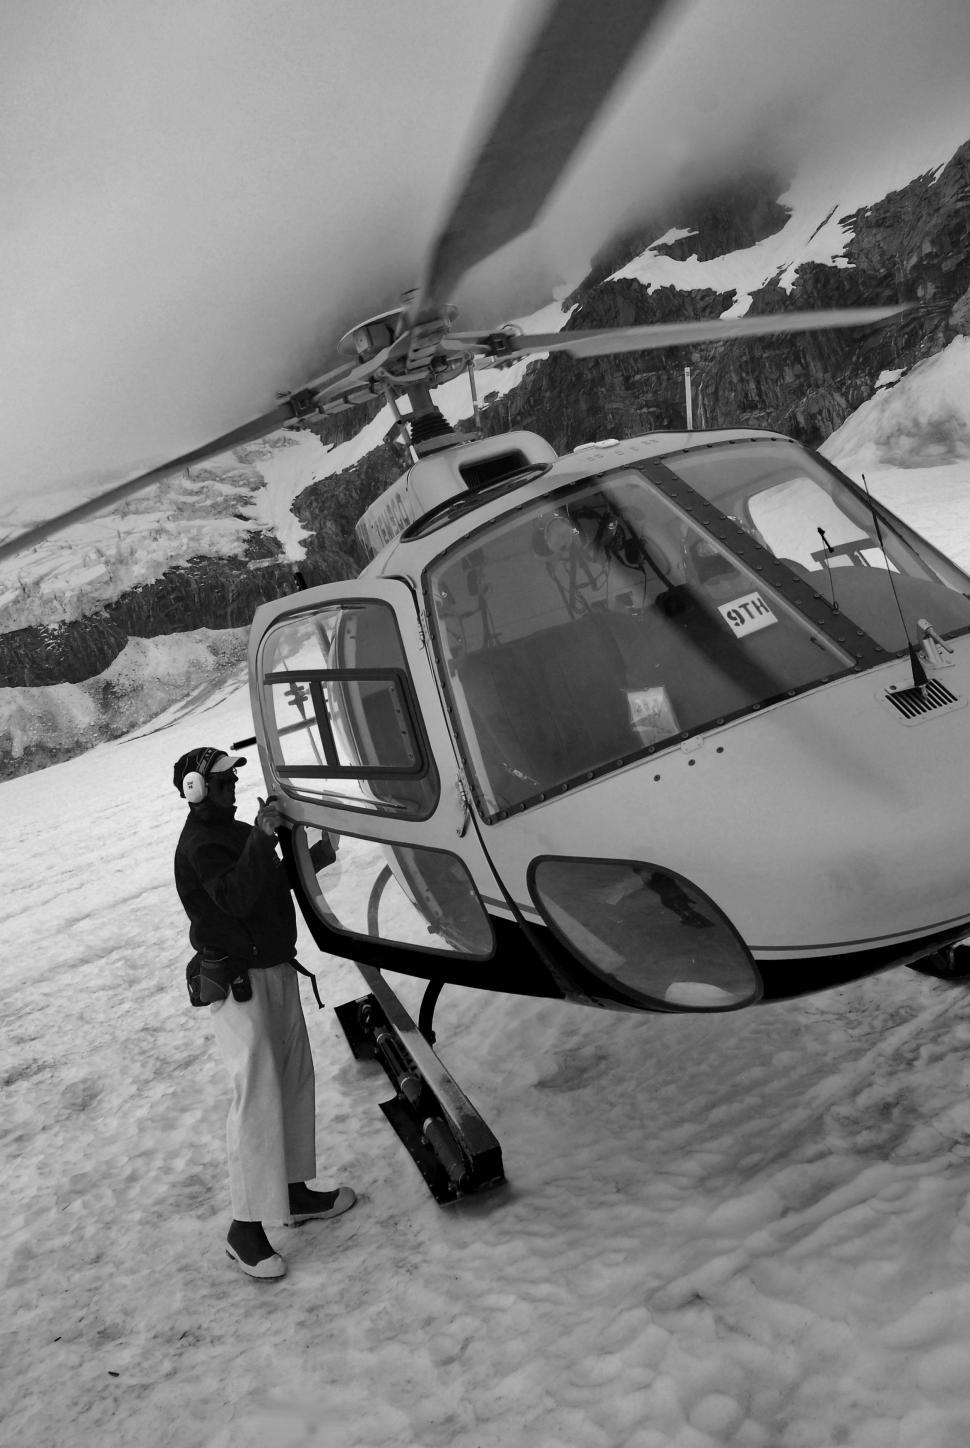 Download Free Stock Photo of Helicopter and Pilot in Snow